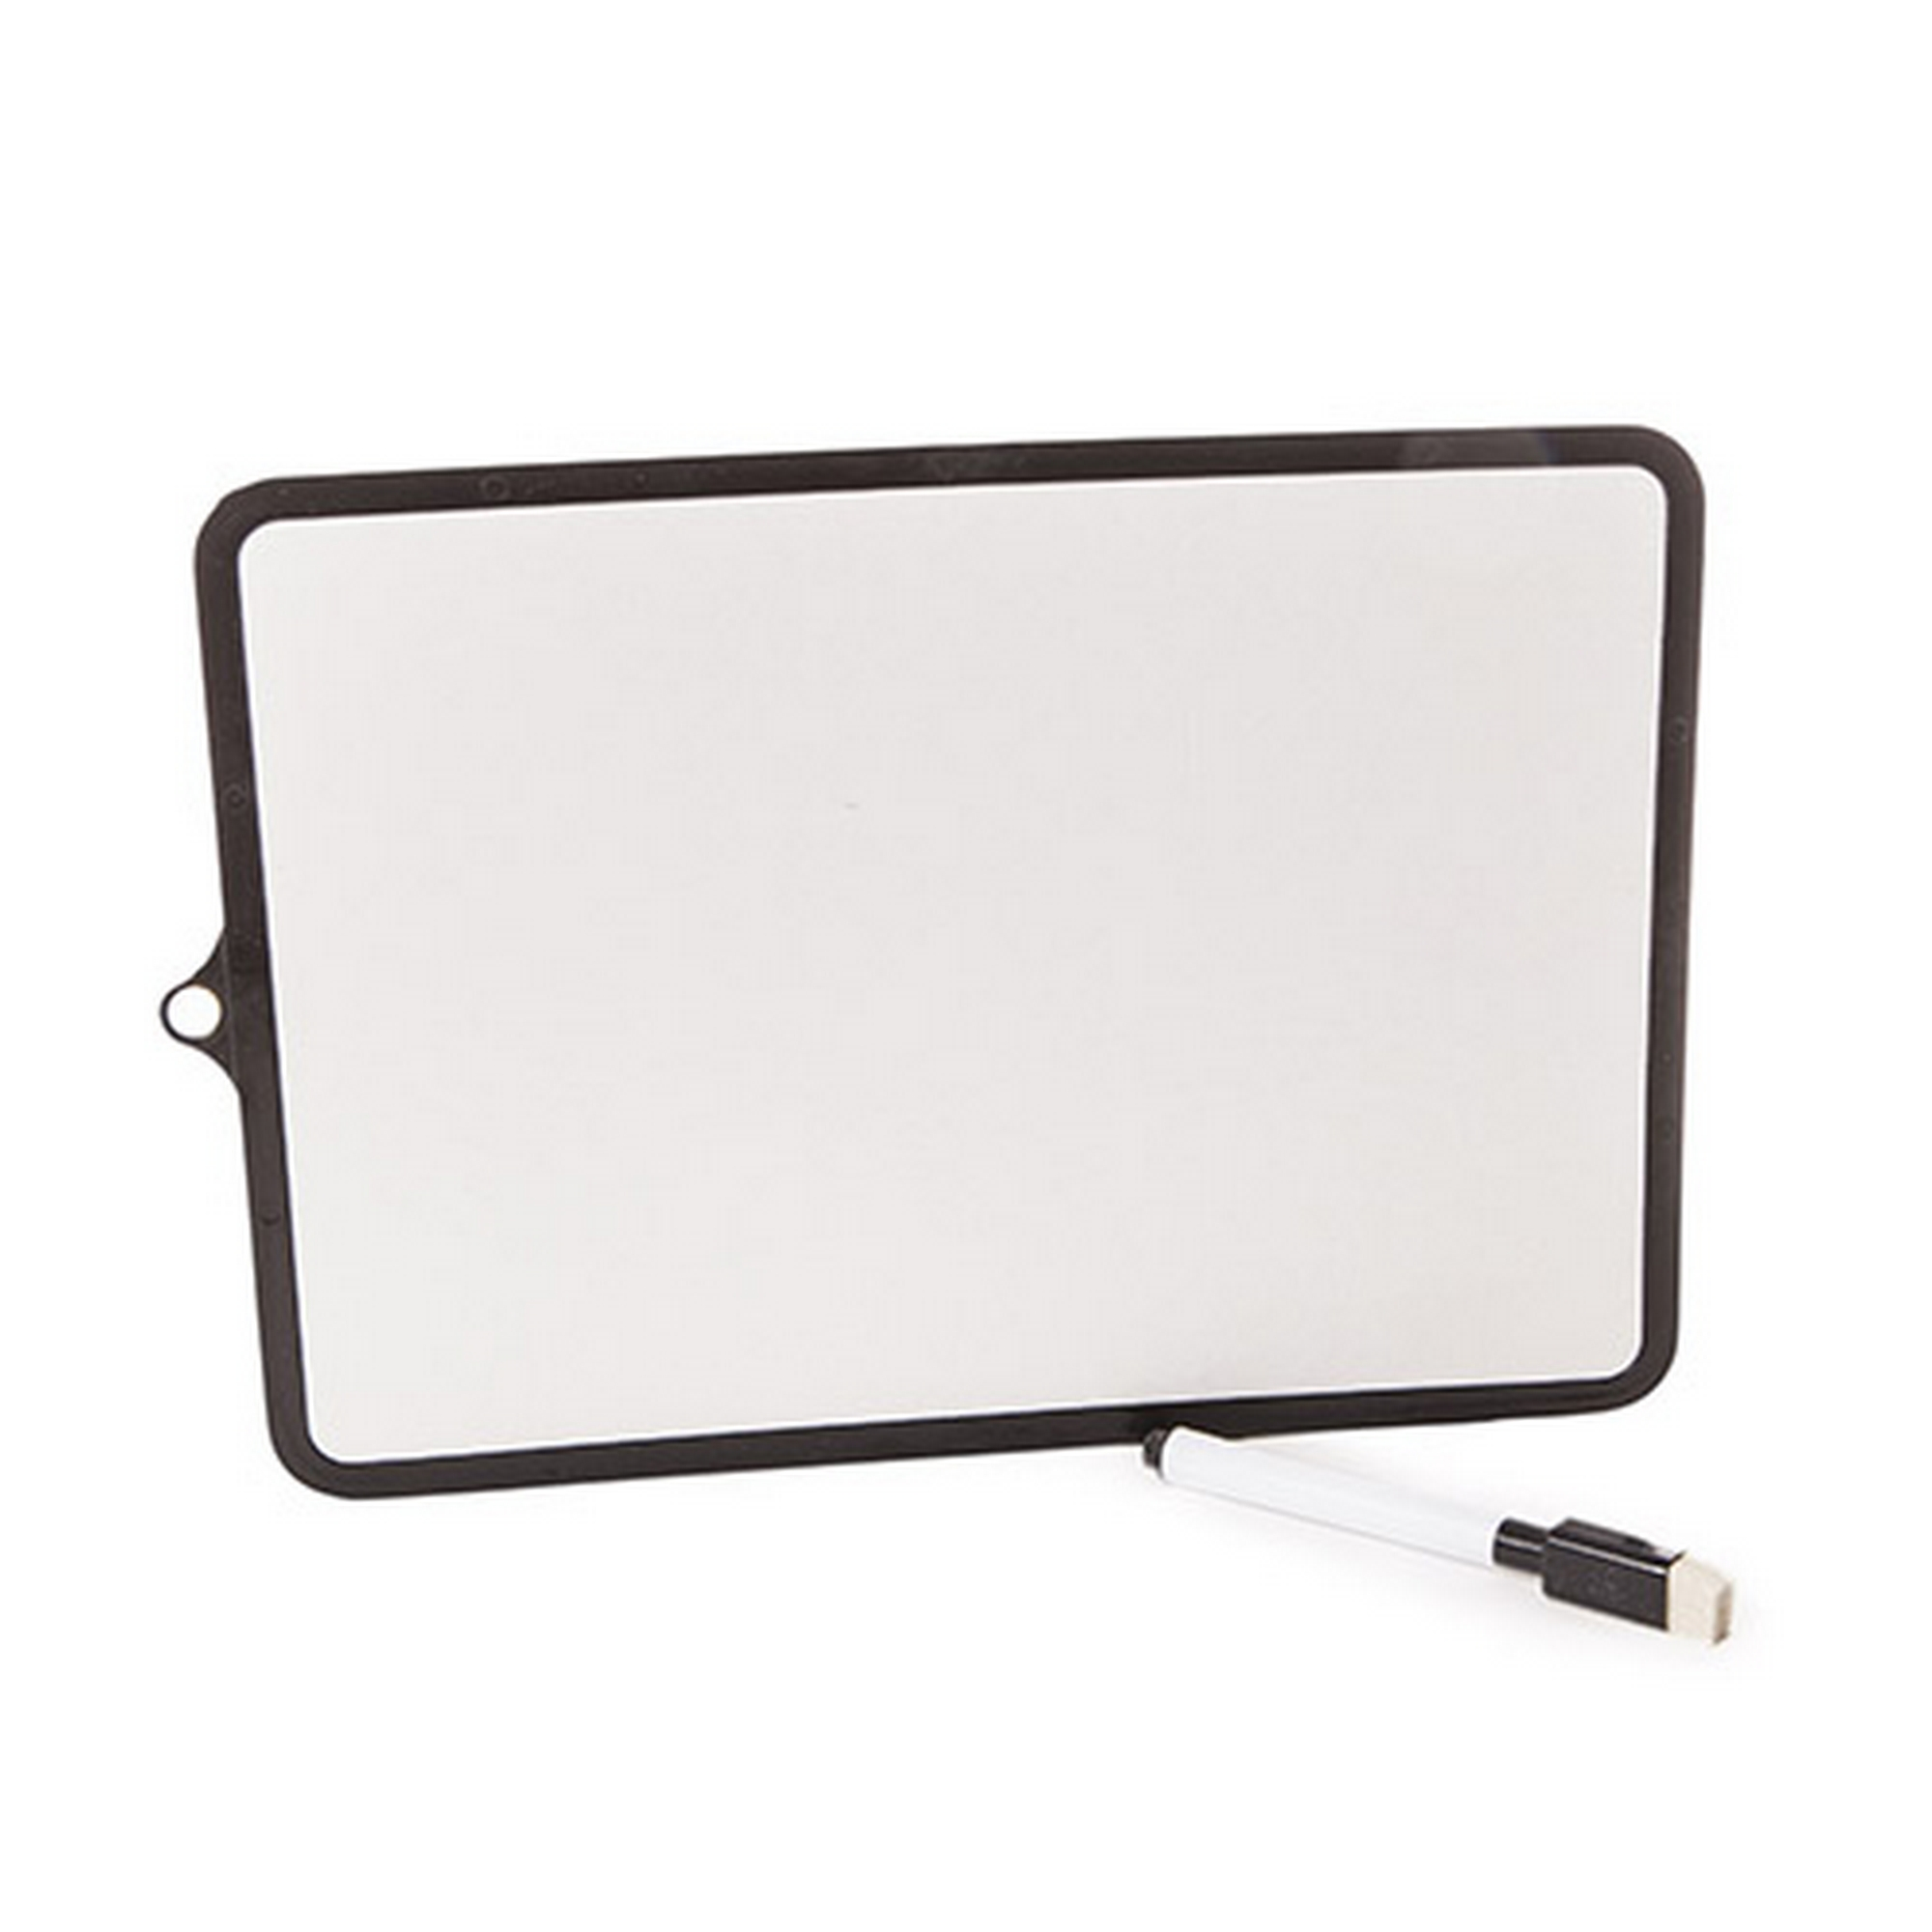 Small Hand Held Double Sided White Board W Pen amp Eraser  : lrgscaleblendboutique 020 from blendboutique.co.uk size 2000 x 2000 jpeg 398kB